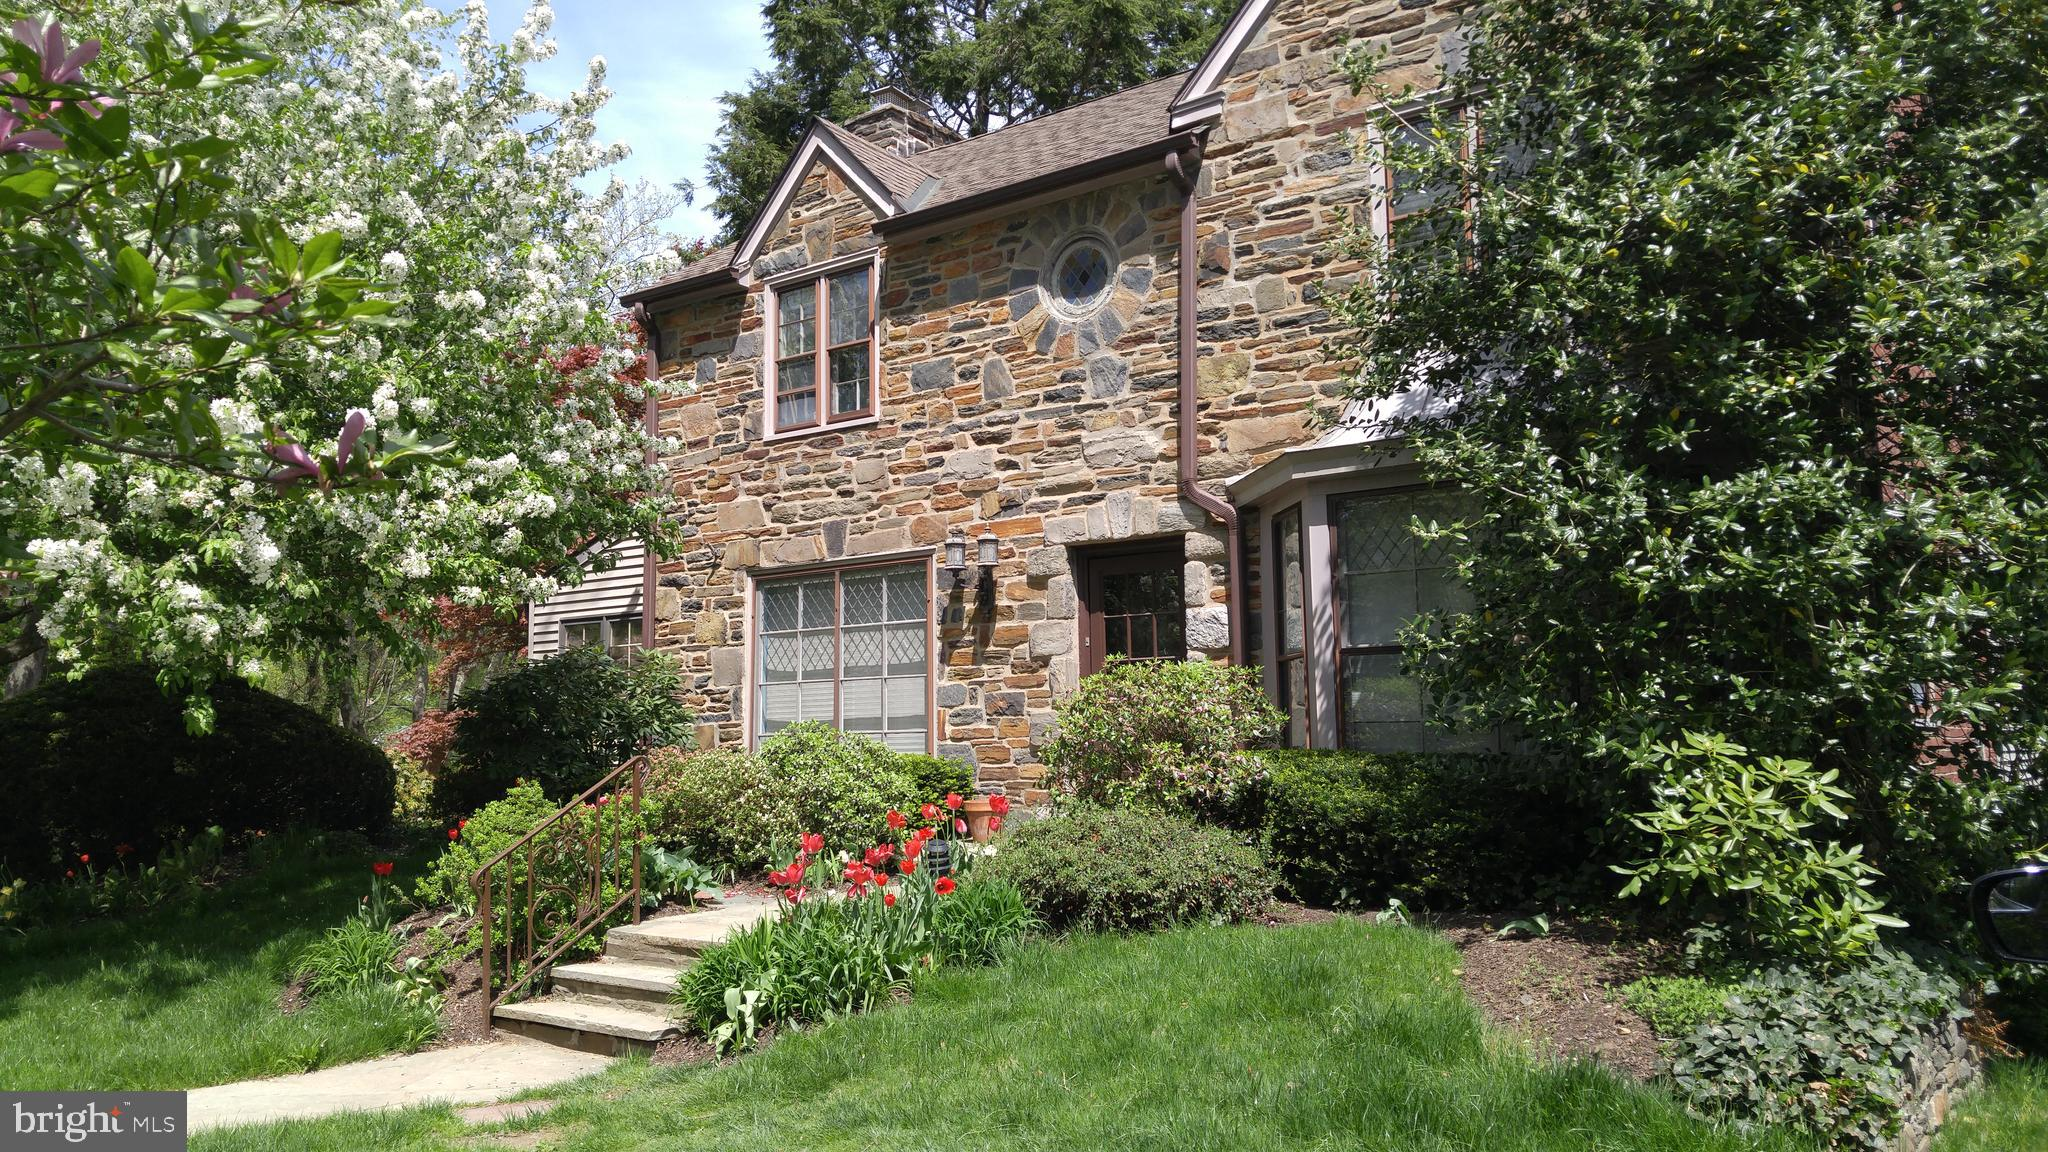 533 WINDING WAY, MERION STATION, PA 19066